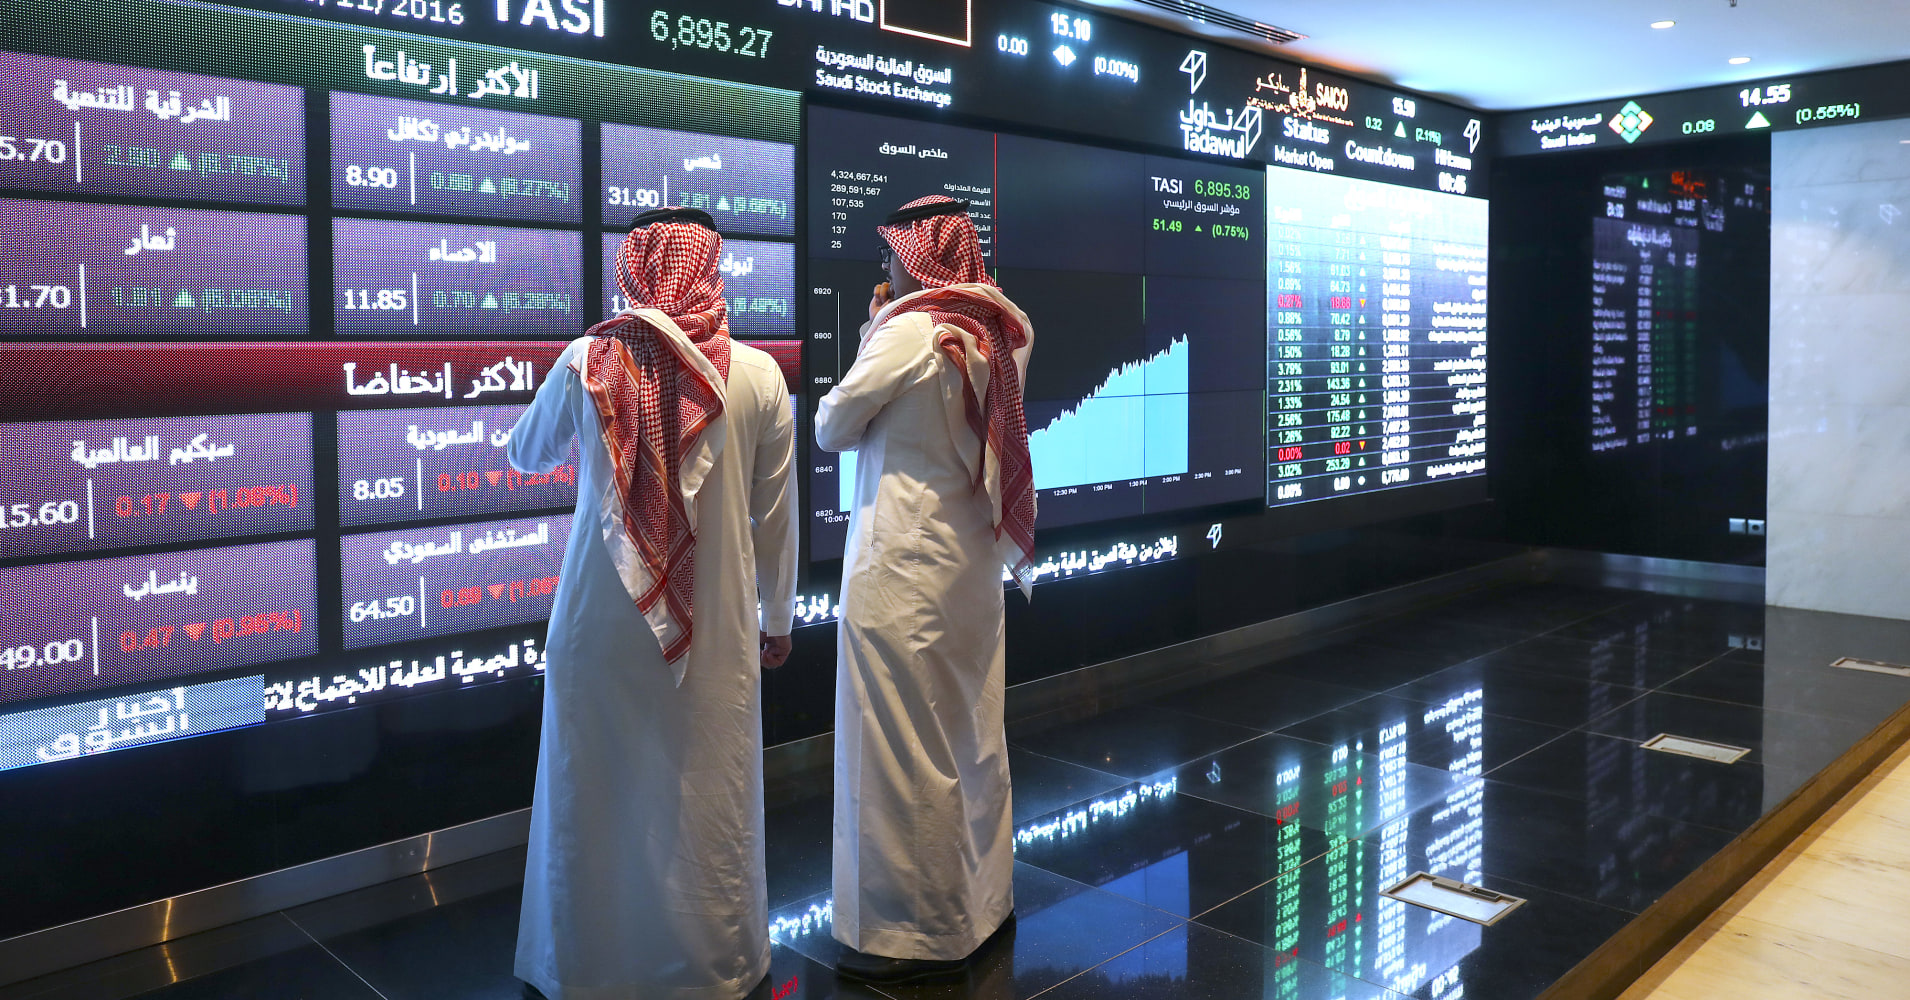 Saudi Arabia's stock exchange makes its debut on global emerging markets indexes